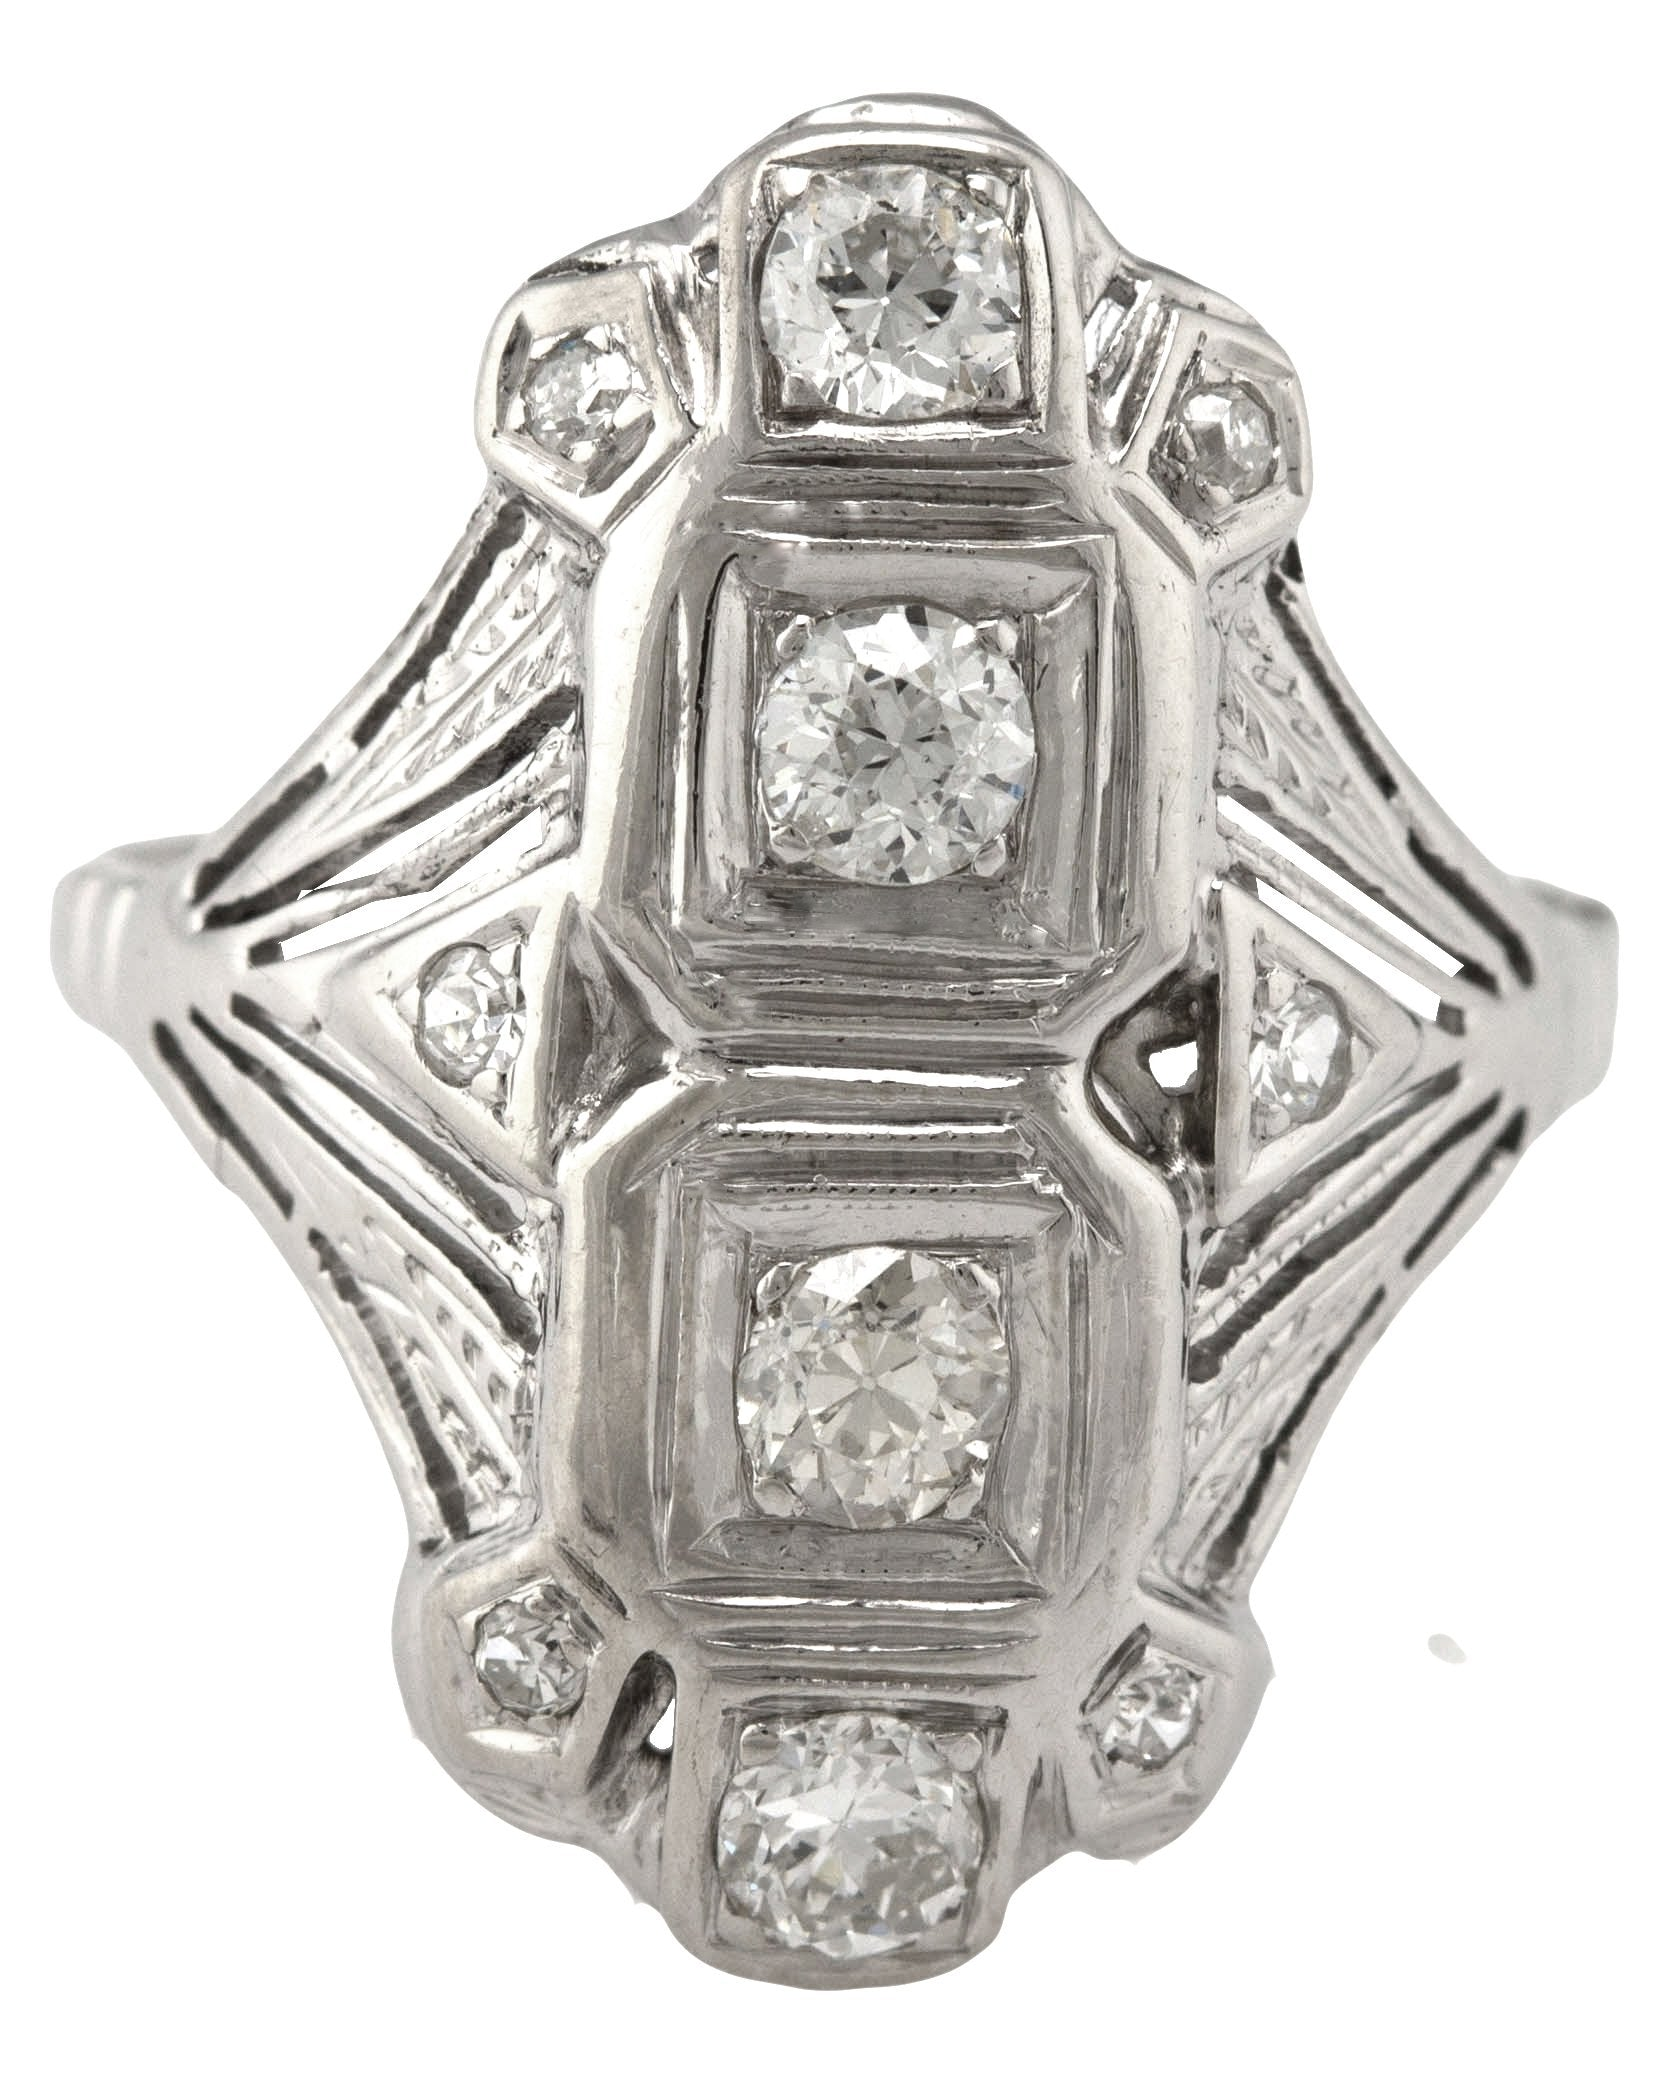 Ladies Antique Art Deco 14K White Gold 0.72ctw Diamond Cocktail Ring